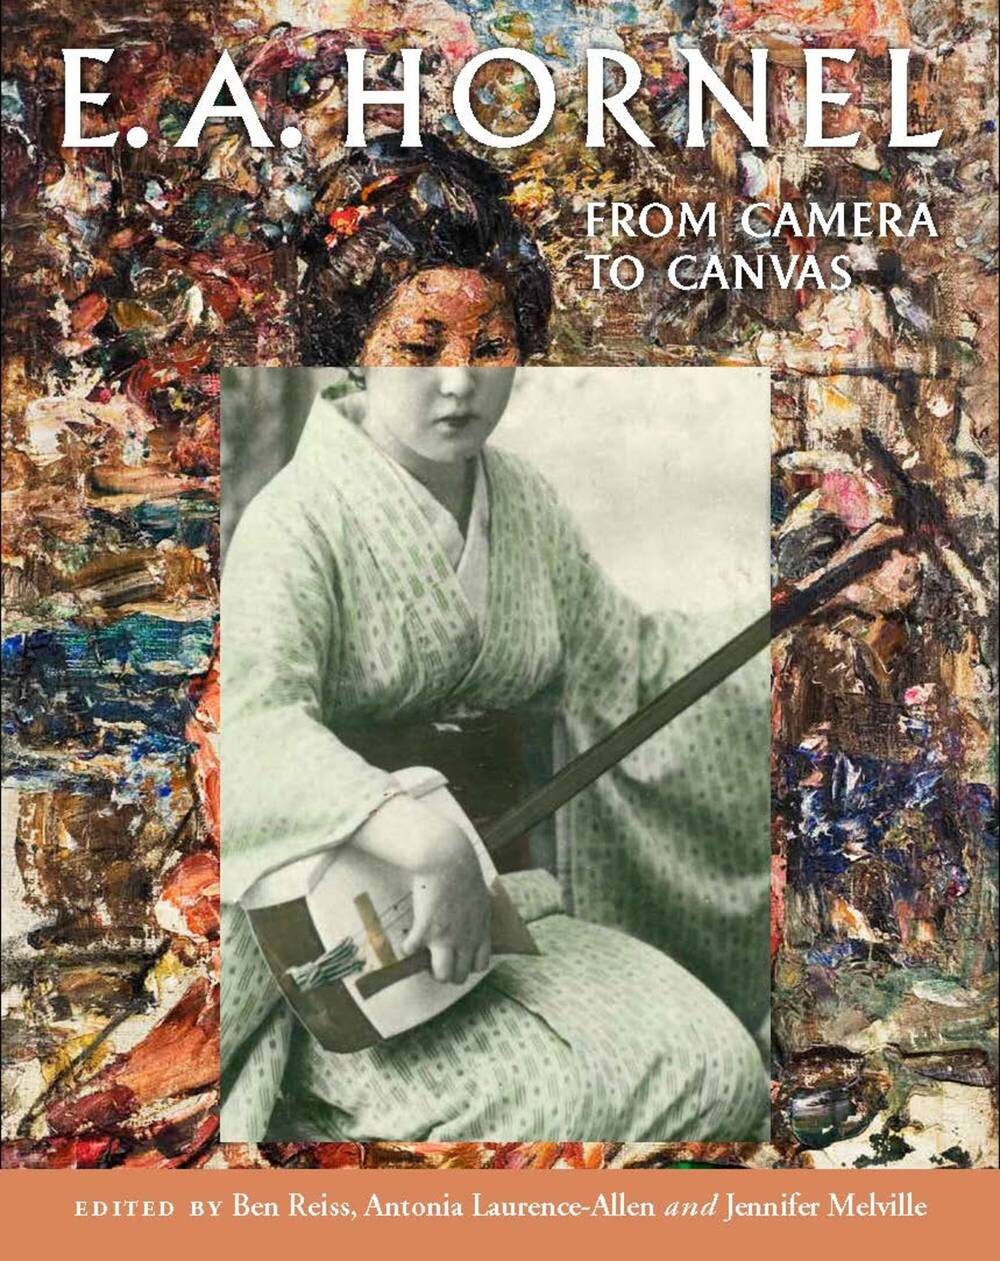 The front cover of the book 'E. A. Hornel: From Camera to Canvas'. The image on the cover is a painting of a Japanese woman playing a shamisen, with a photo of the same woman superimposed on it.